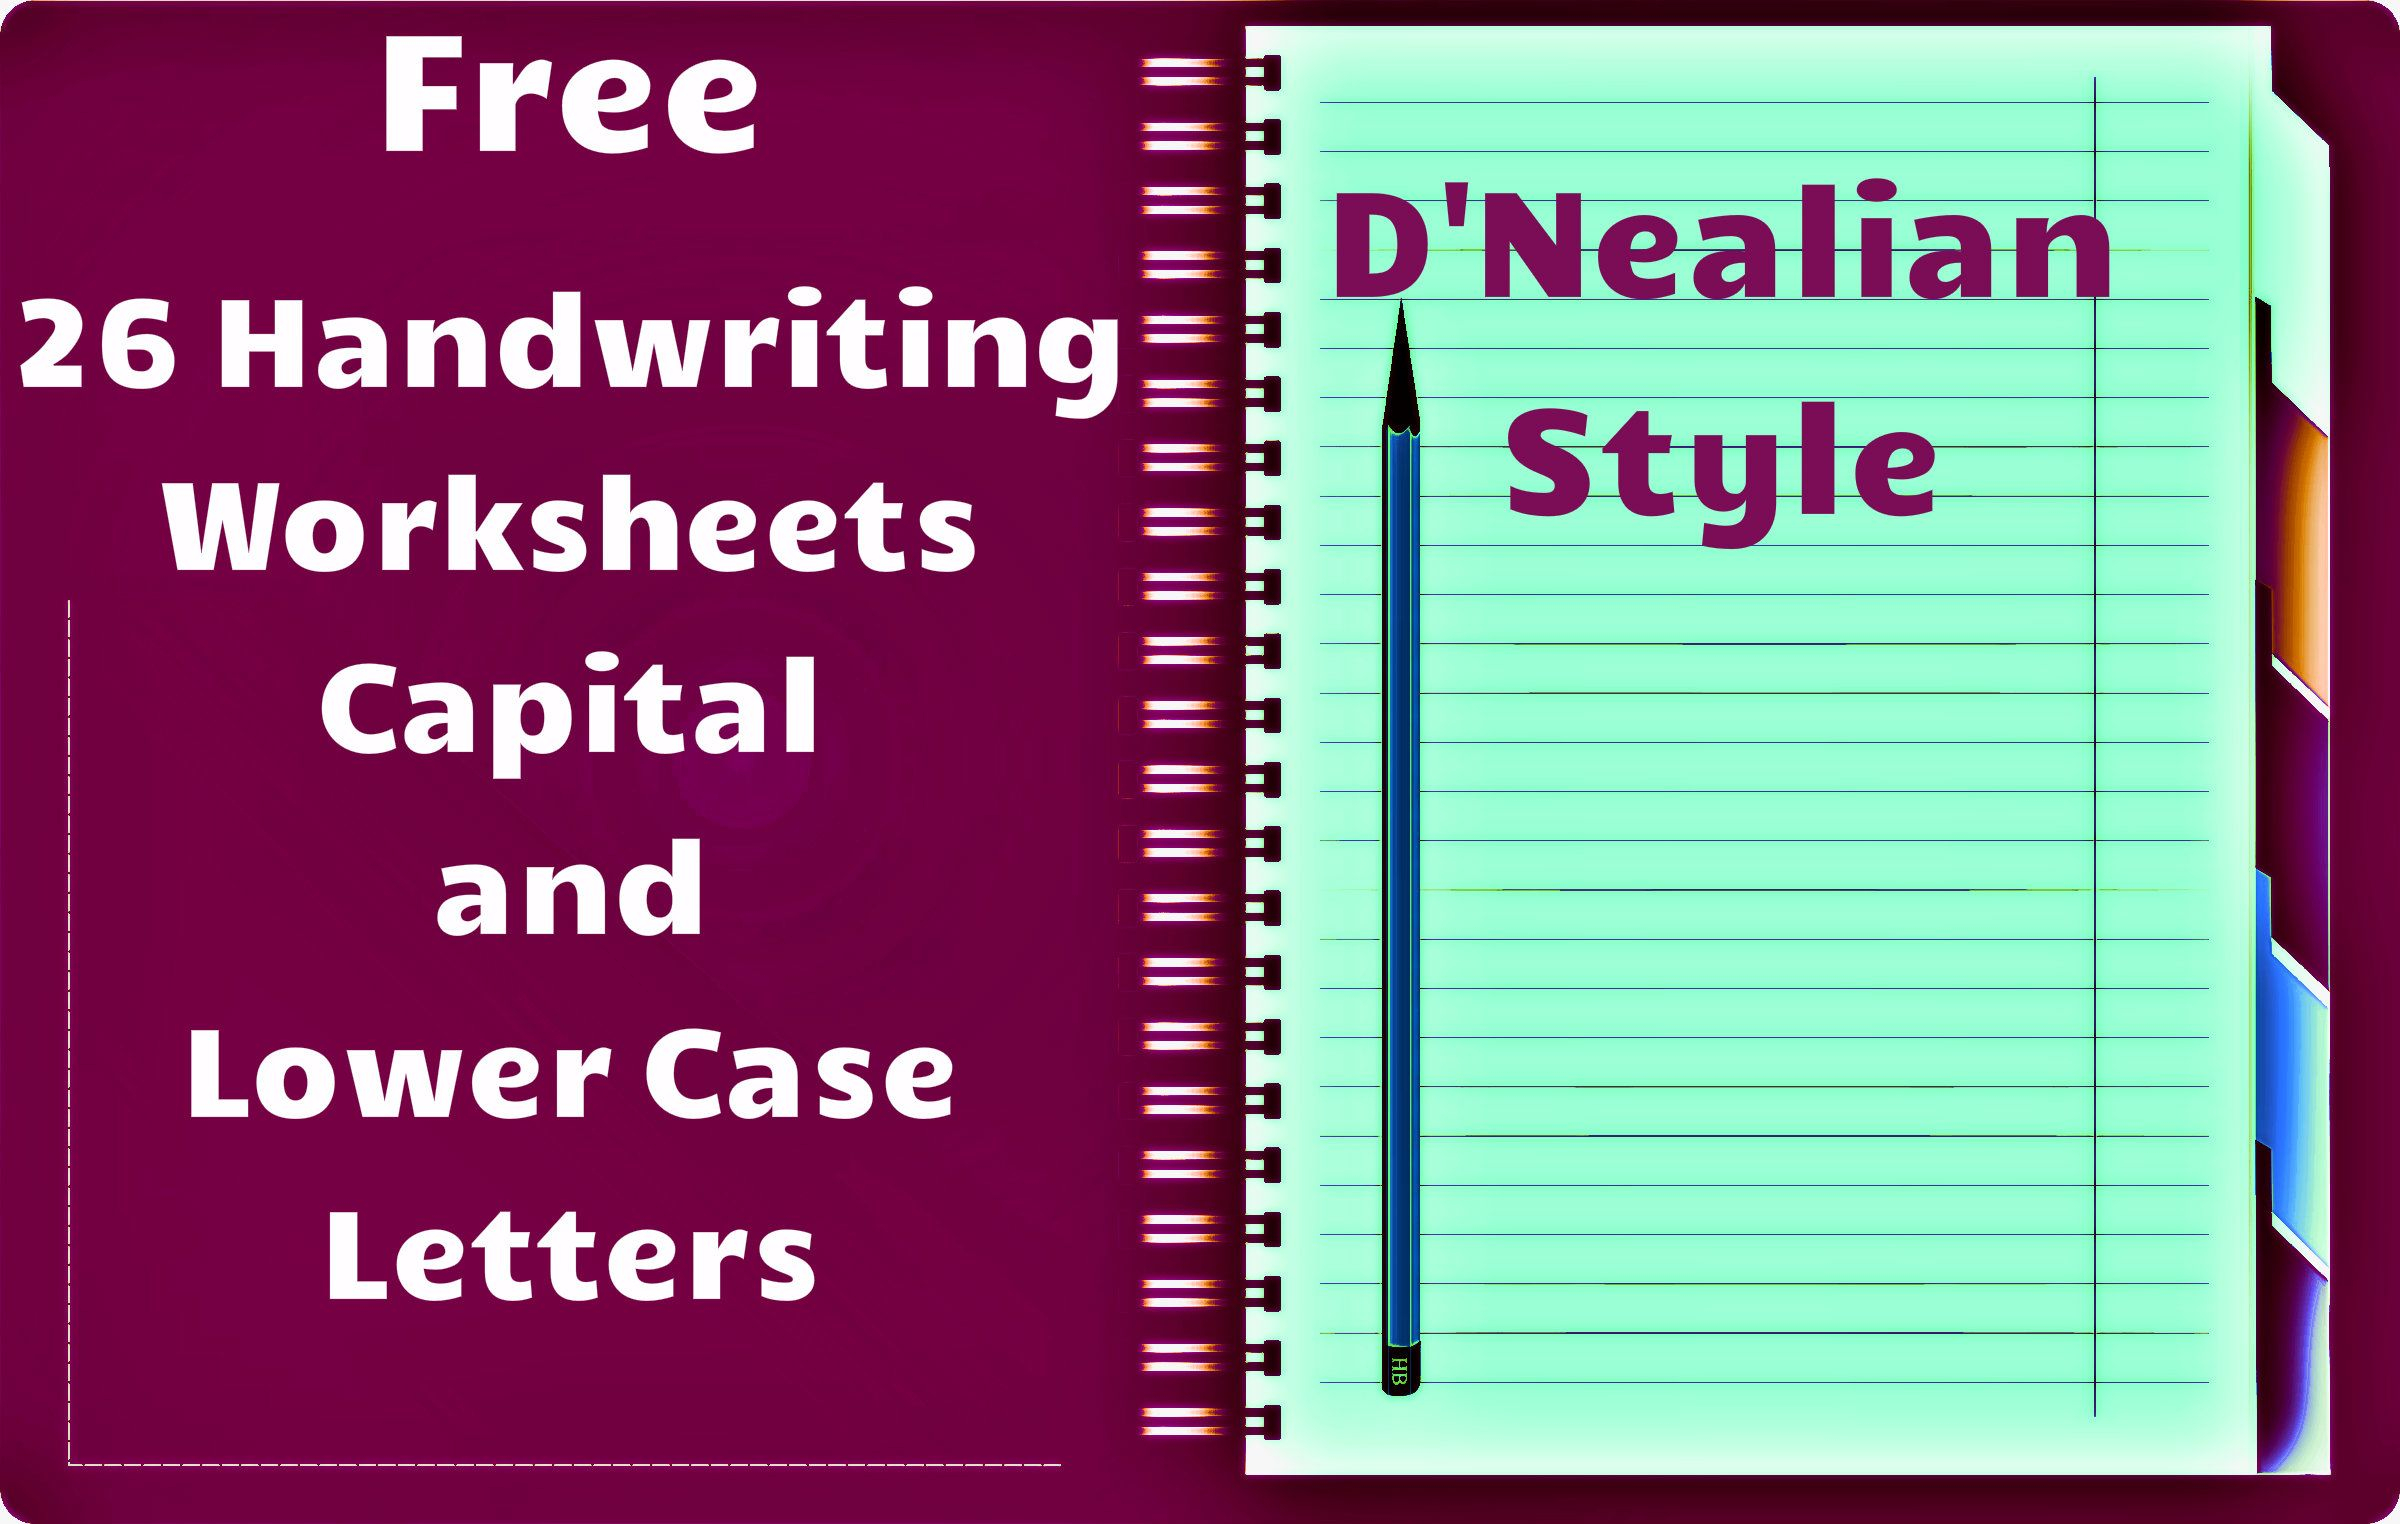 Free Handwriting Worksheets! Includes Worksheets For All for D'nealian Alphabet Worksheets